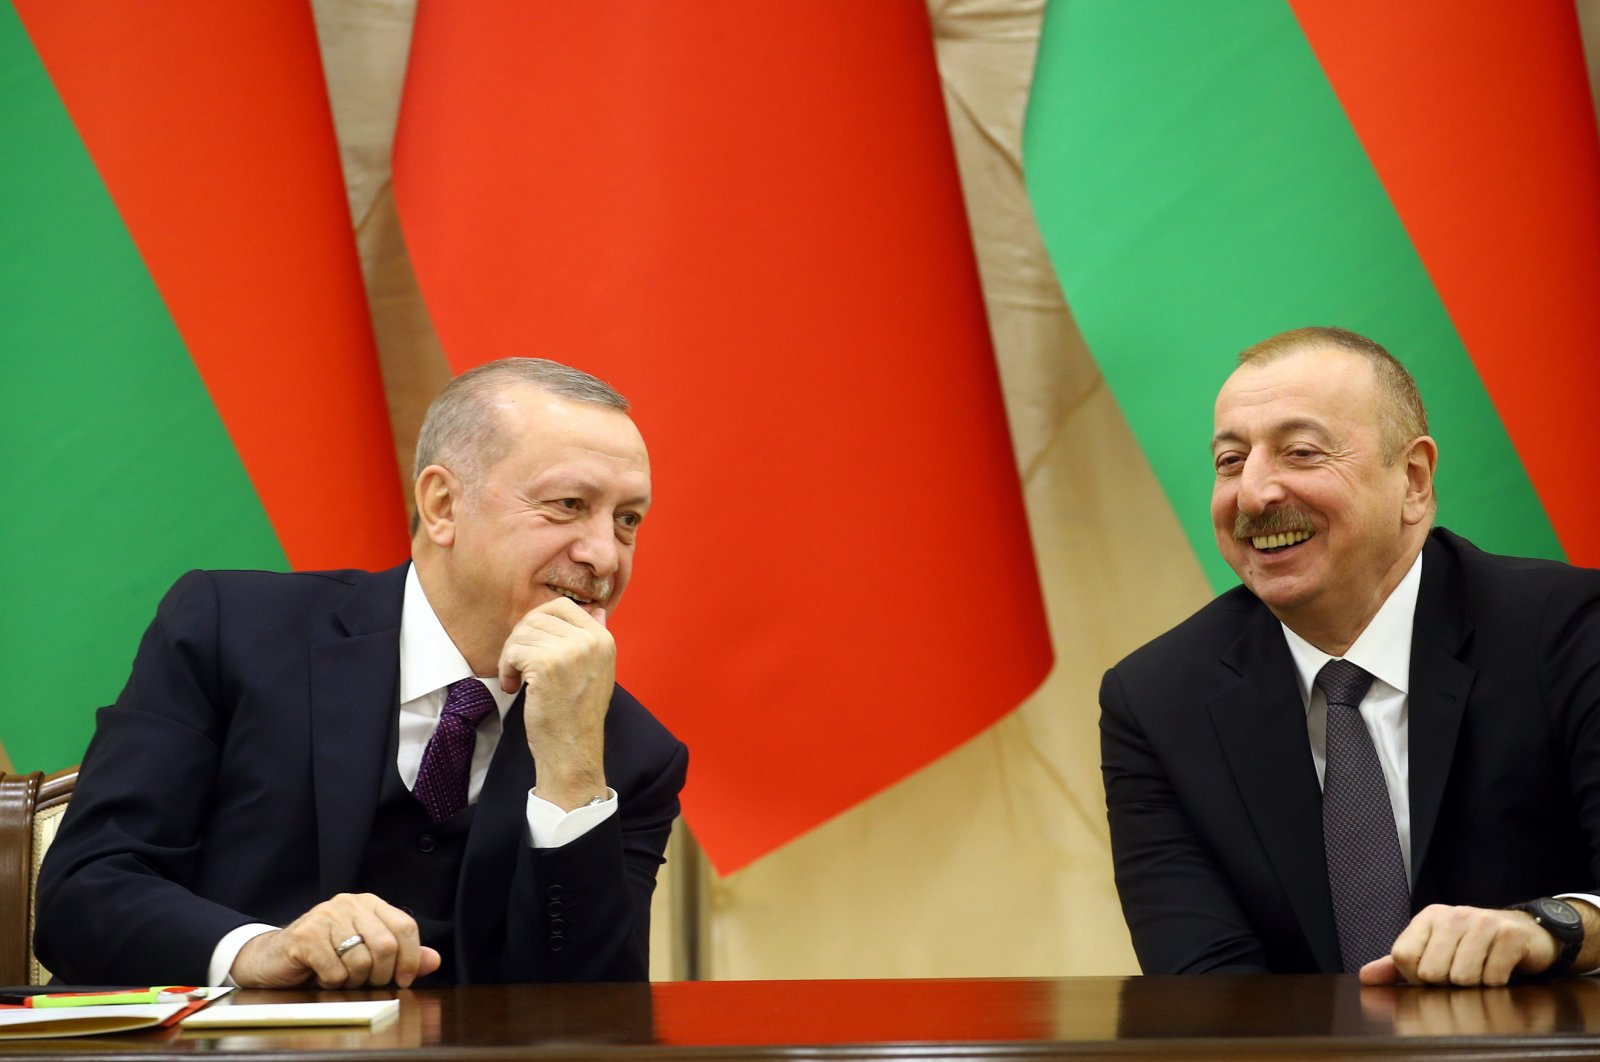 President Recep Tayyip Erdoğan and his Azerbaijani counterpart Ilham Aliyev during a press conference on the eighth meeting of the High-level Strategic Cooperation Council, Baku, Azerbaijan, Feb. 26, 2020. (AA Photo)